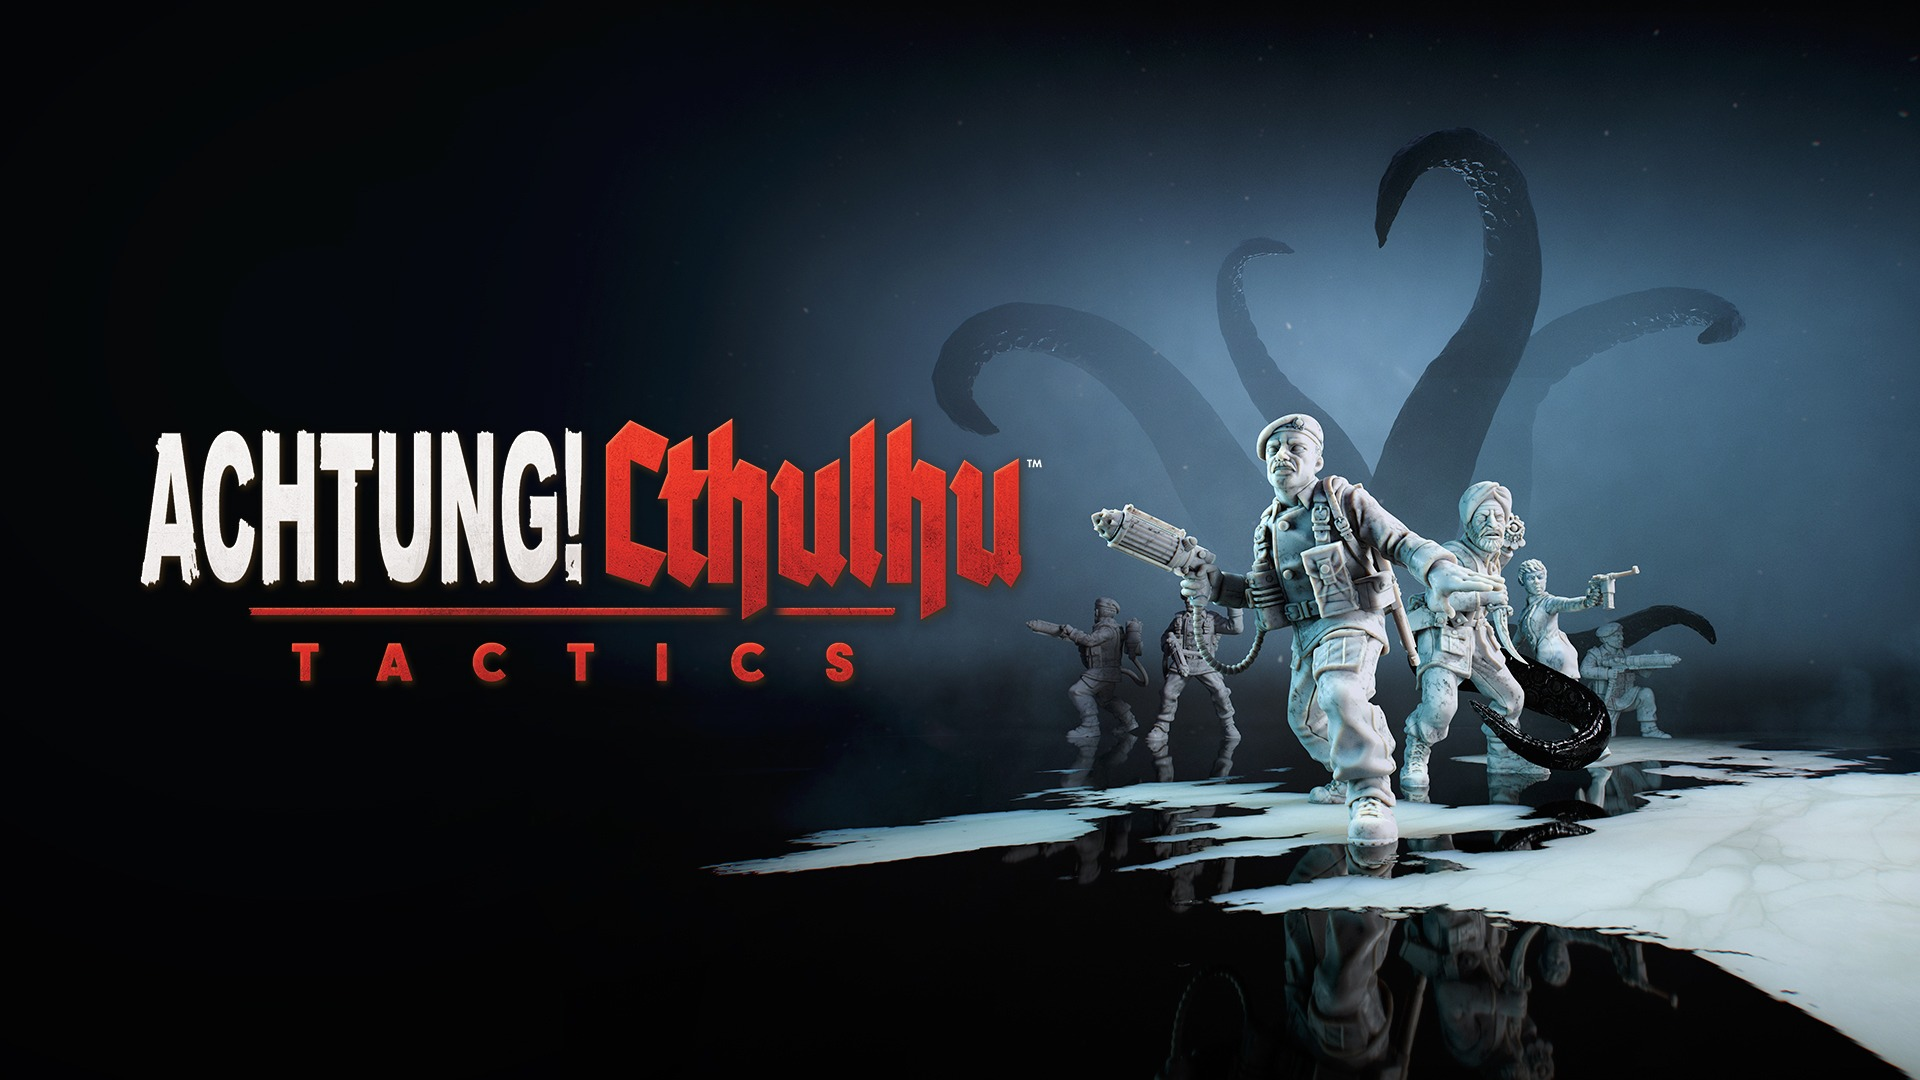 Achtung! Cthulhu Tactics stats facts